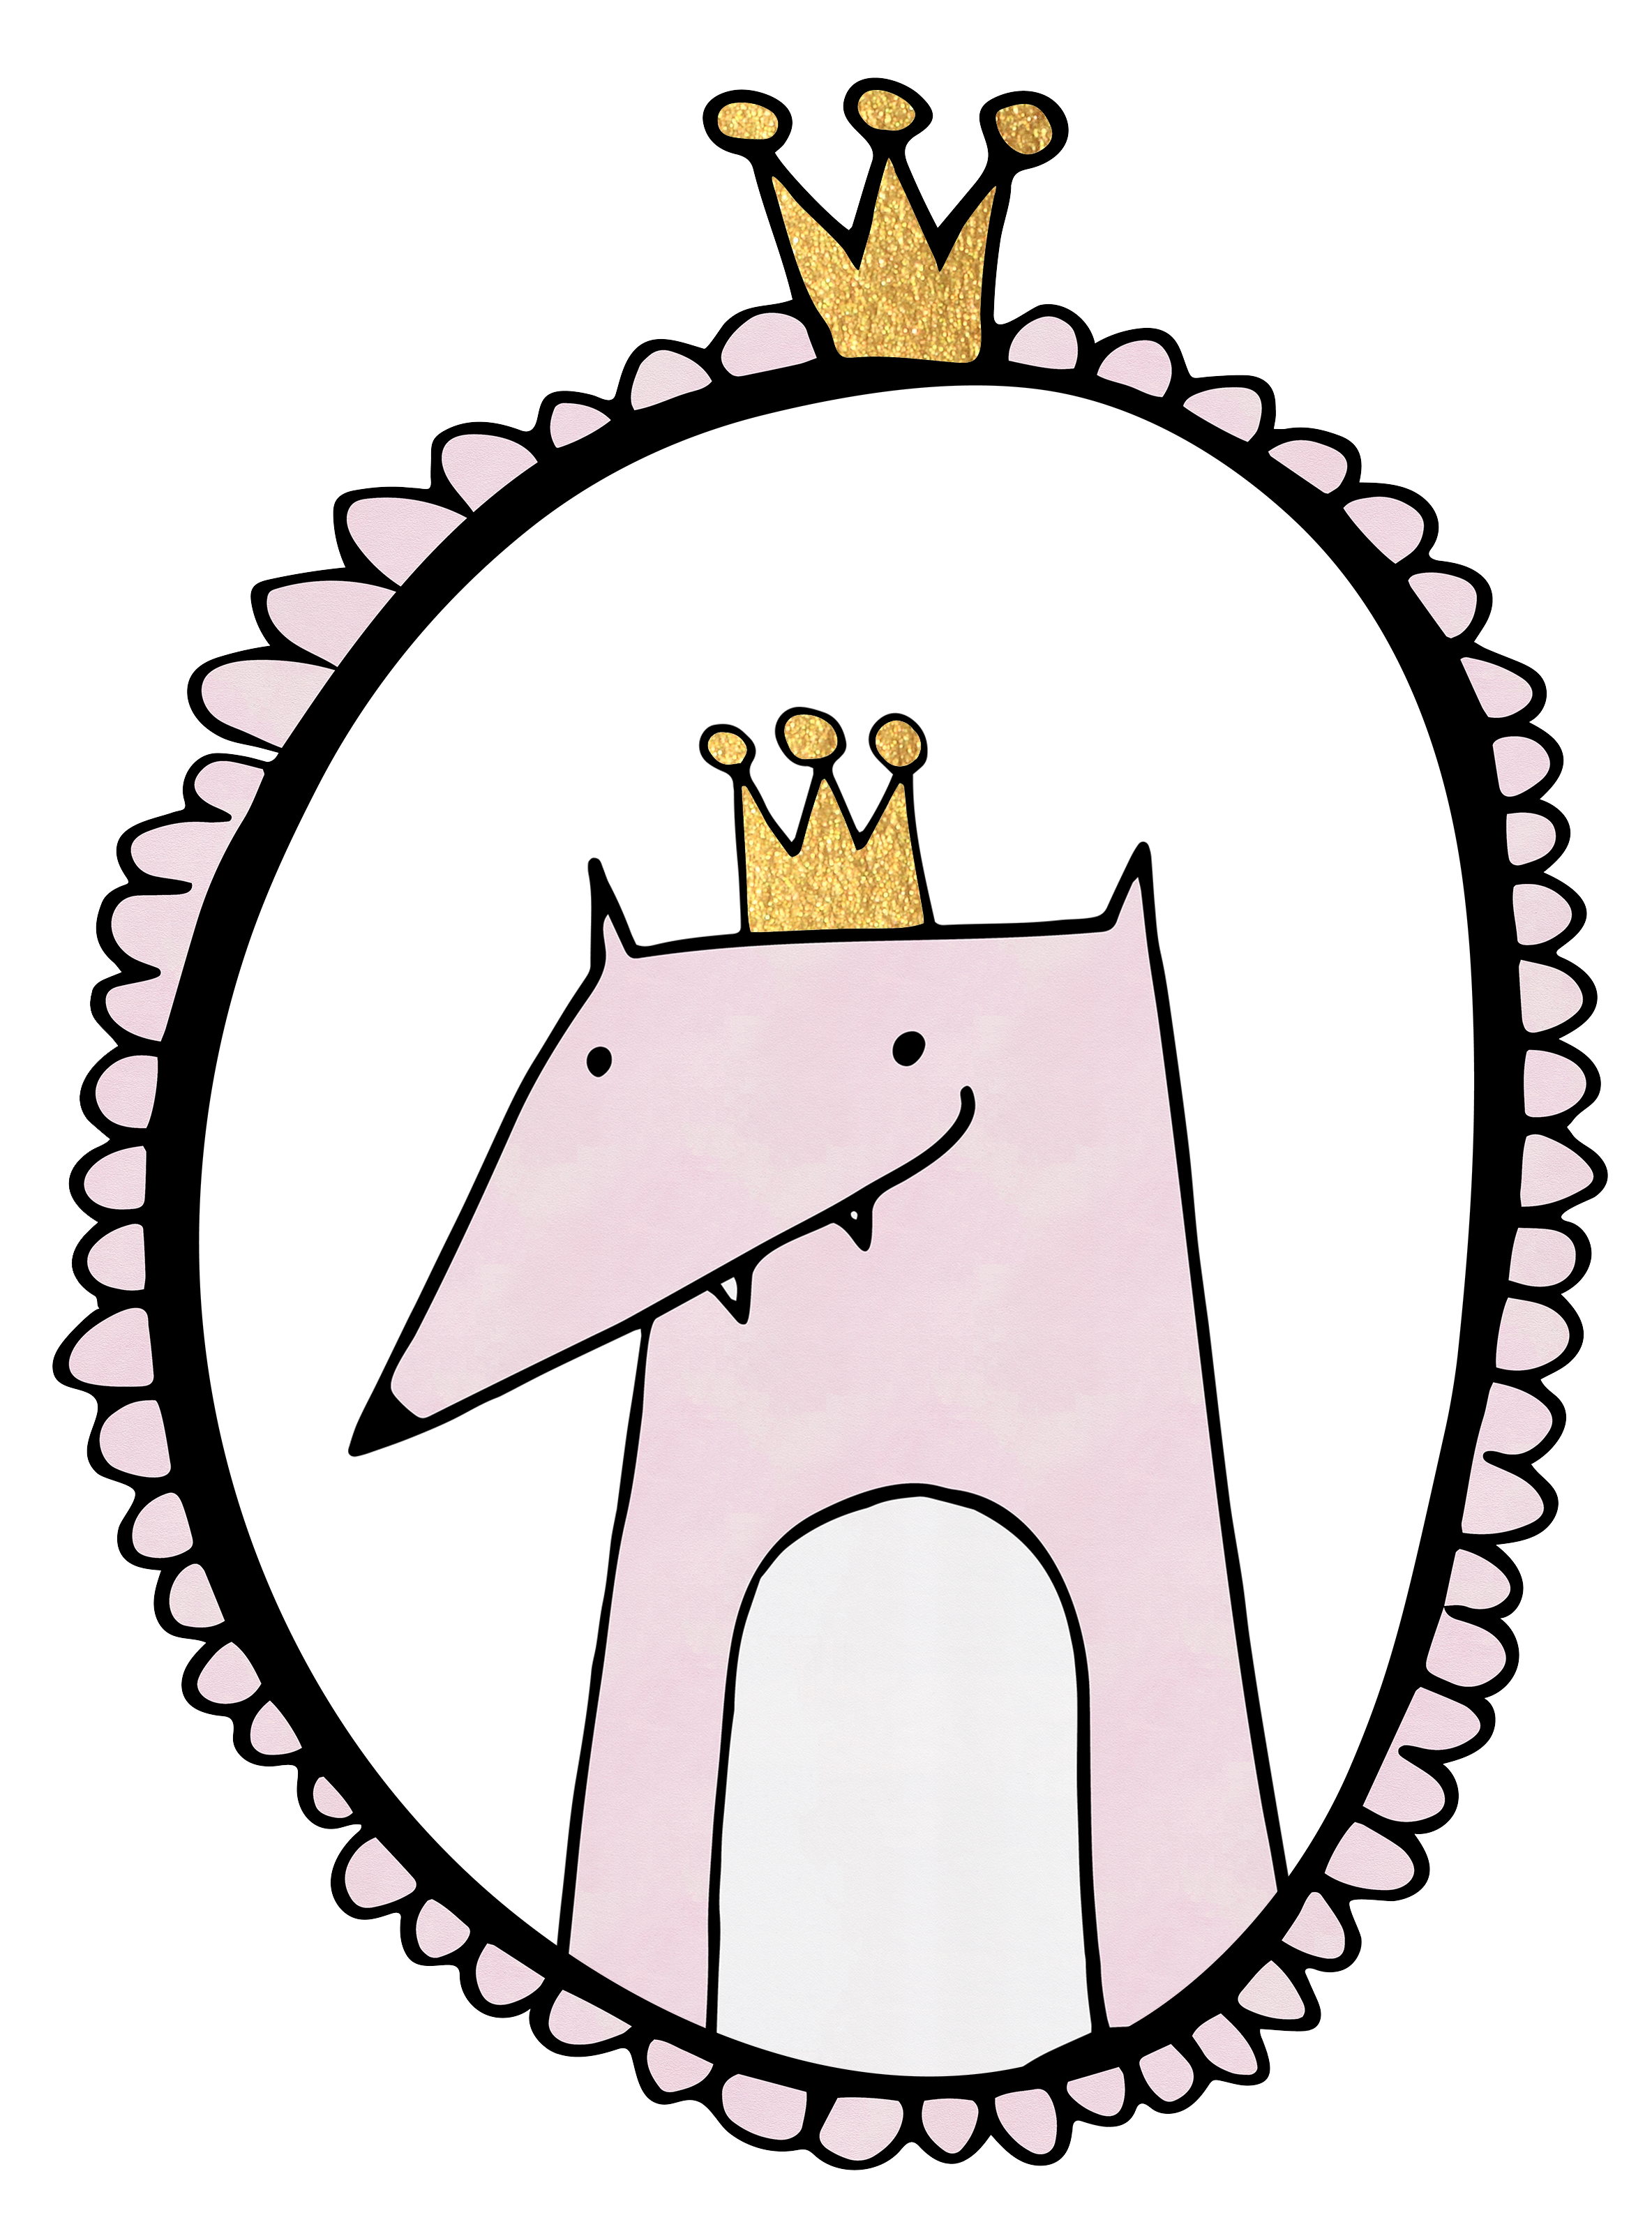 Crown design clipart clip art royalty free freebie clipart design with a woodland fox and crown by Wallifyer ... clip art royalty free